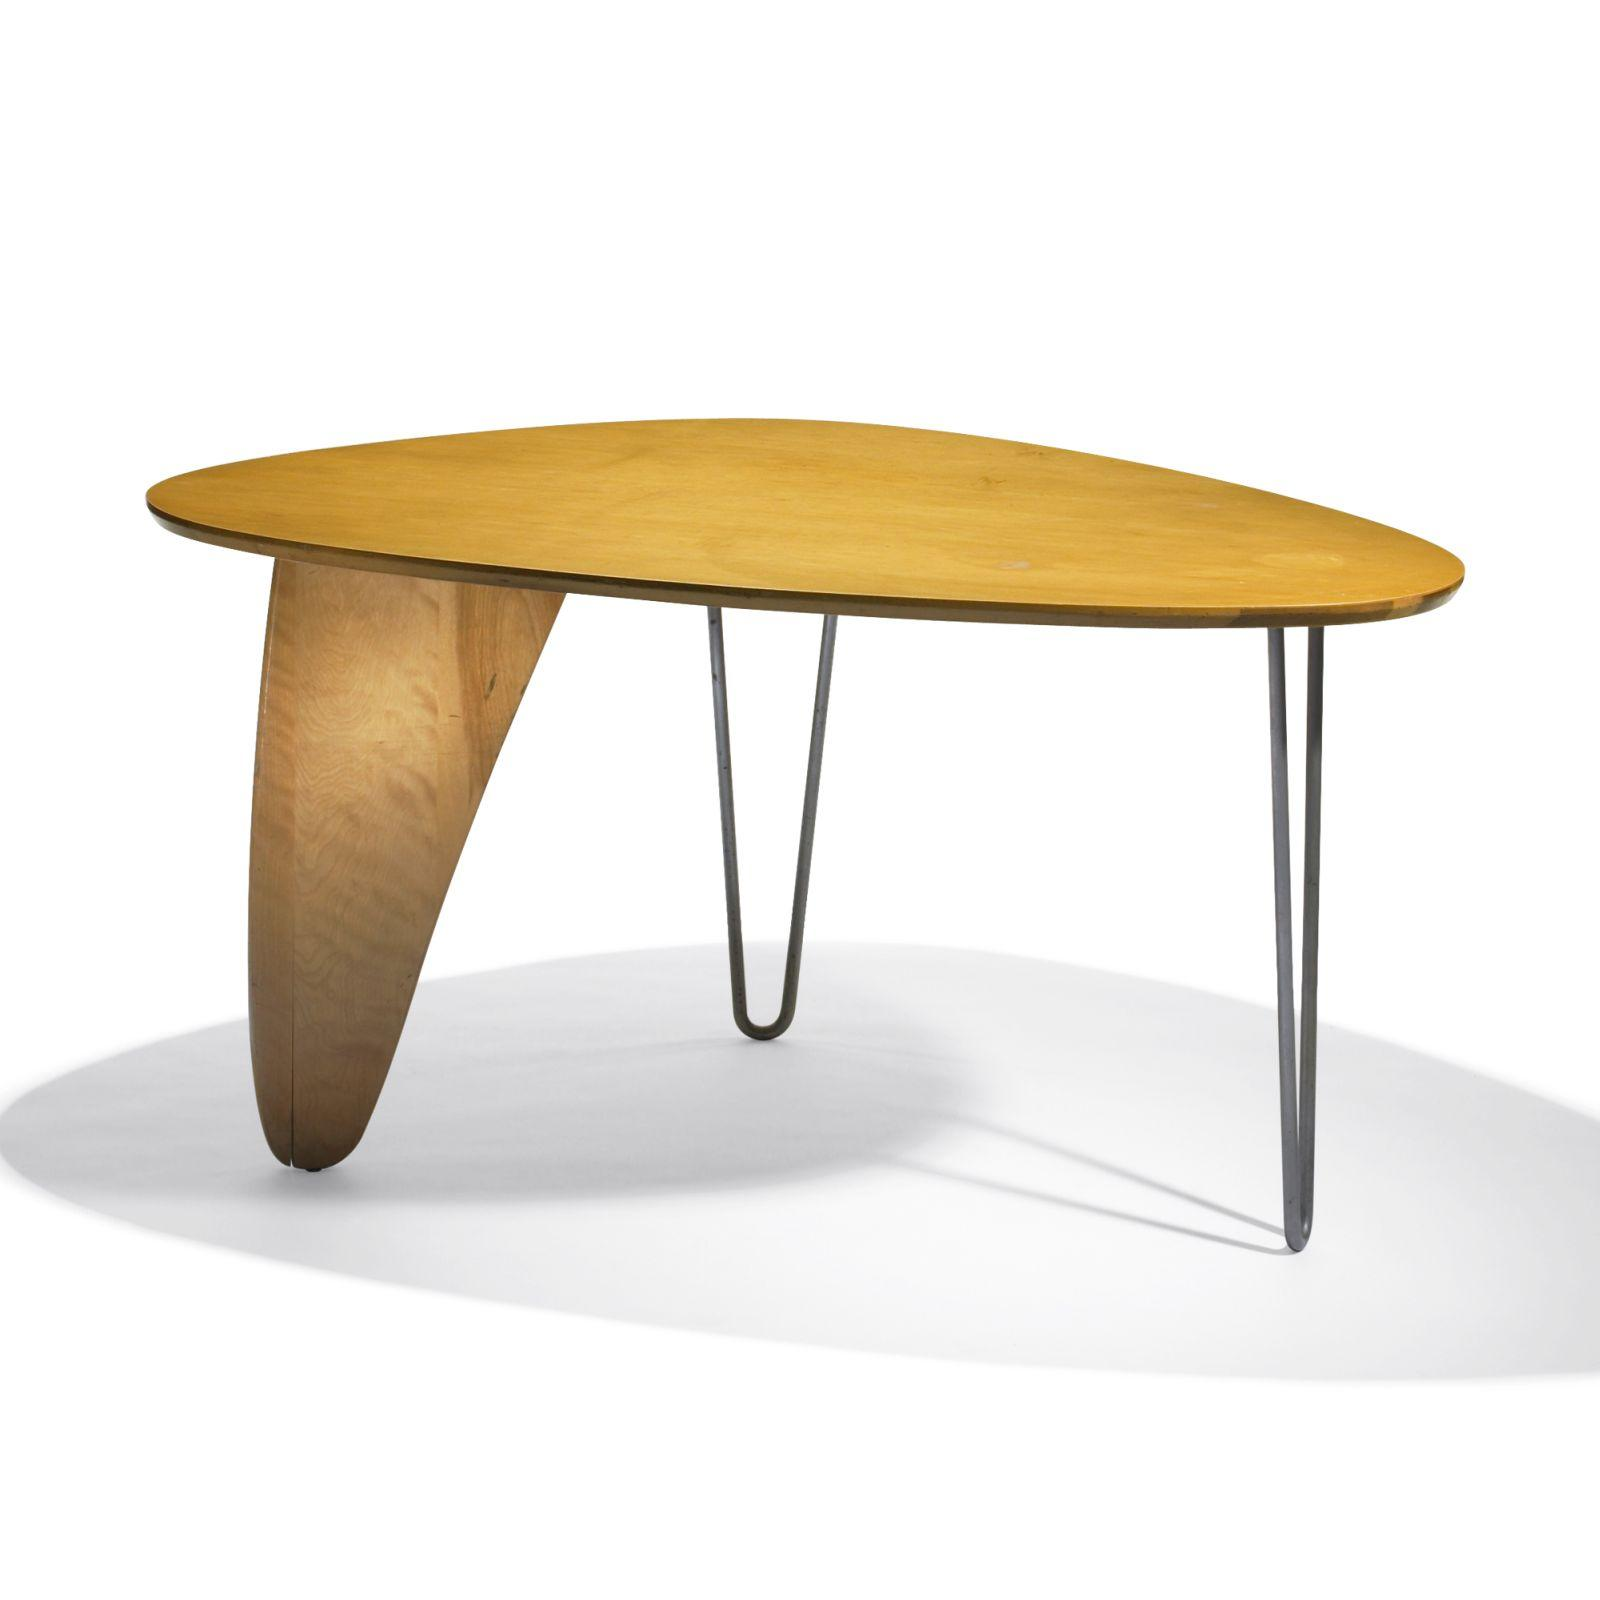 Isamu Noguchi Rudder dining table, model IN-20